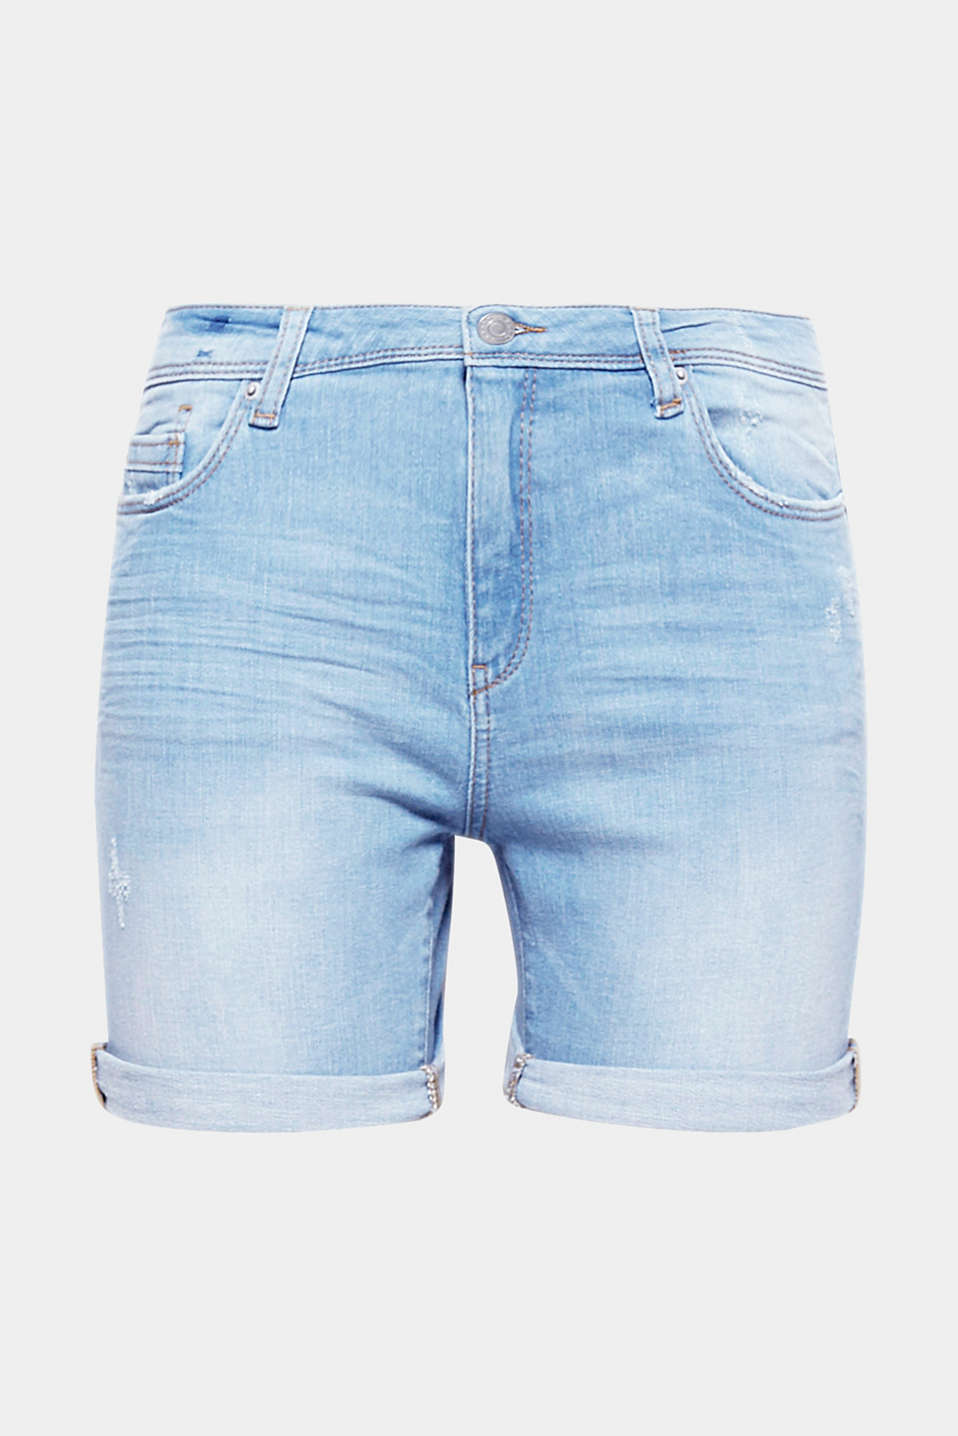 Your new off-duty companion has arrived: Shorts in a five-pocket design made of bleached denim with vintage effects